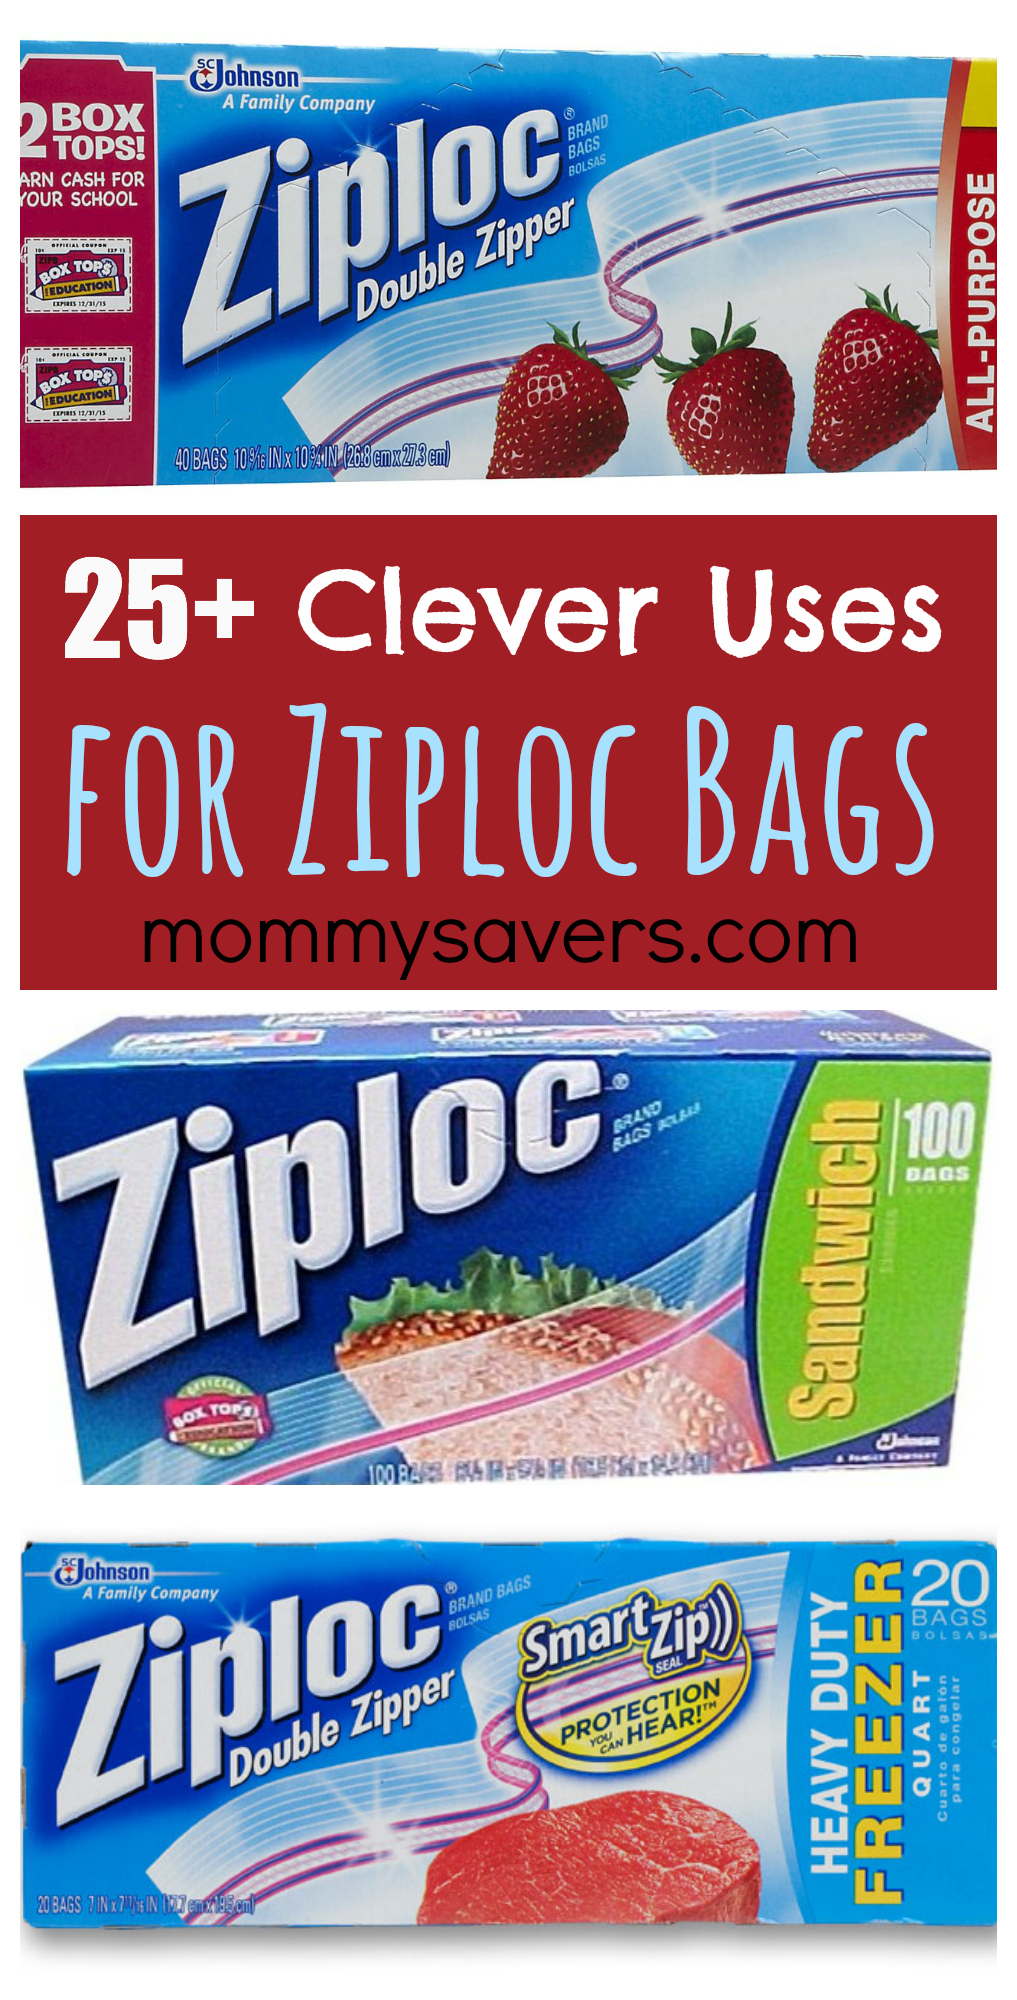 25 clever uses for ziploc bags | mommysavers